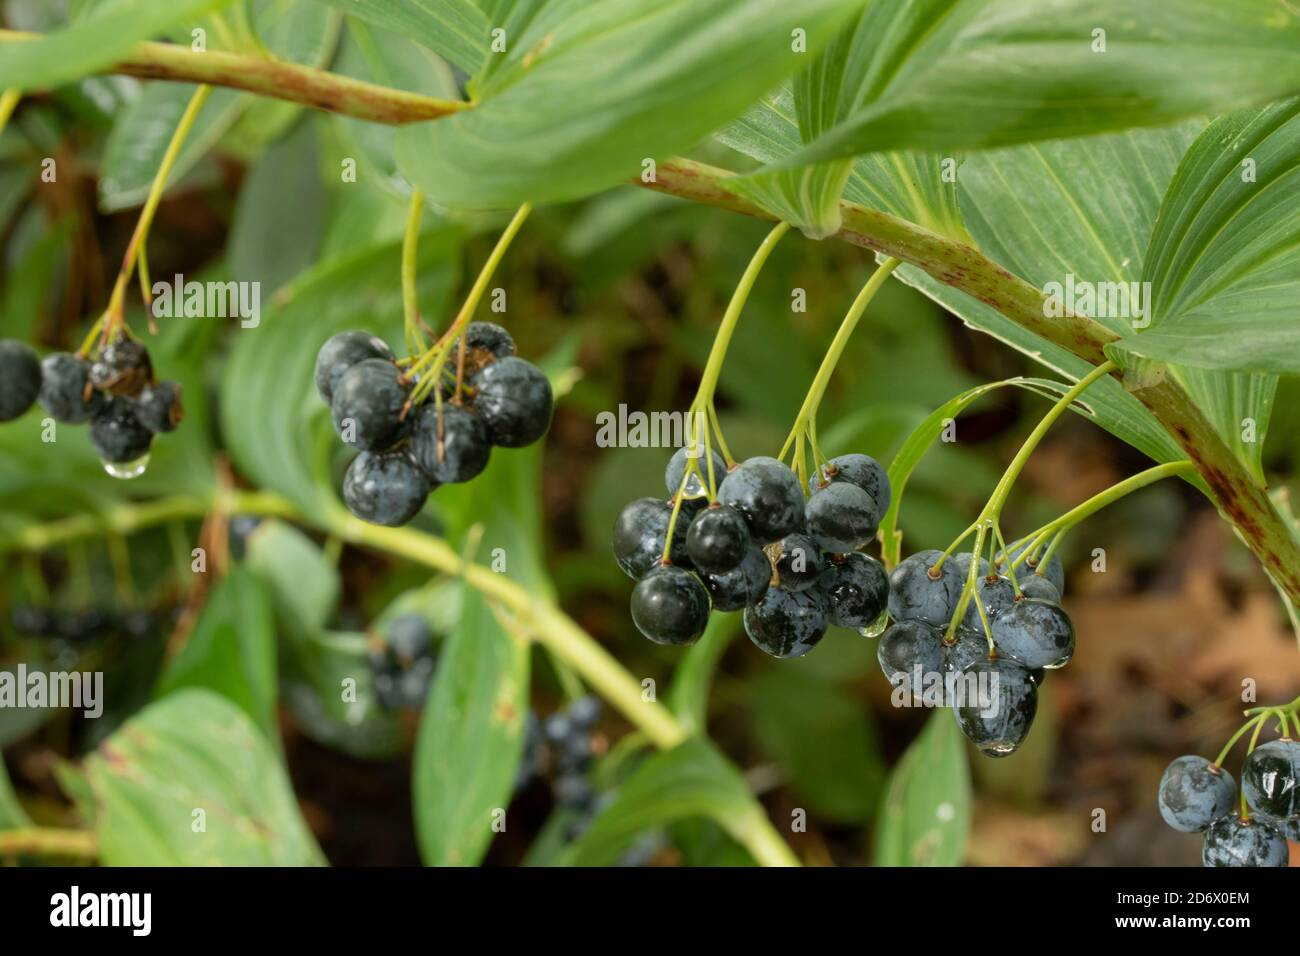 Polygonatum Odoratum (Silver Wings) with late summer berries and foliage Stock Photo